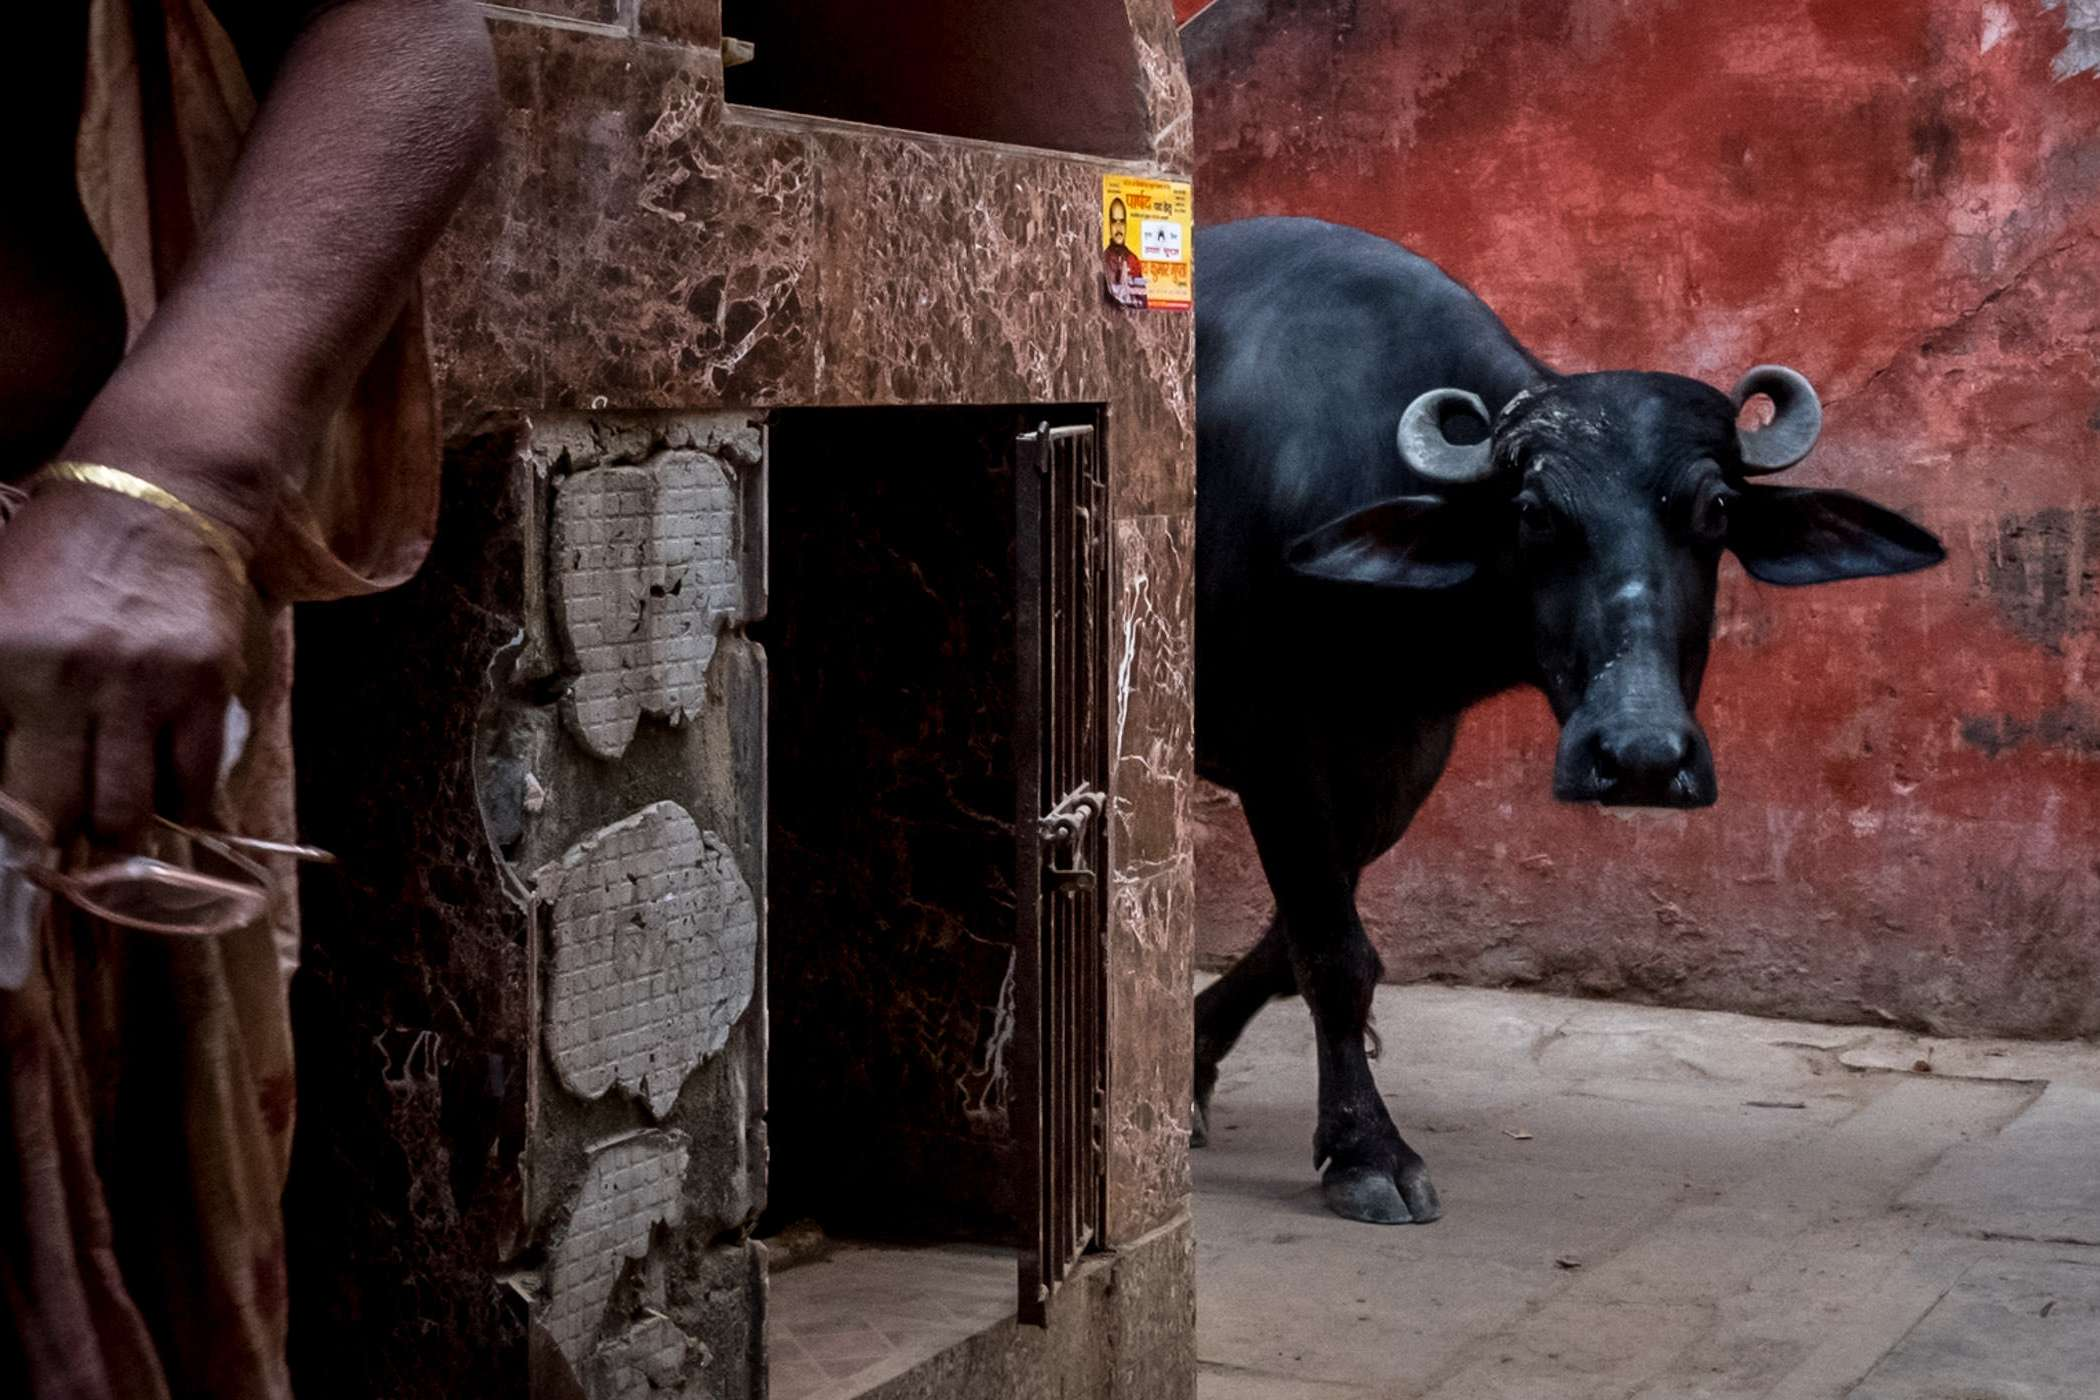 Cow coming around the corner in Varanasi on our India street photography trip